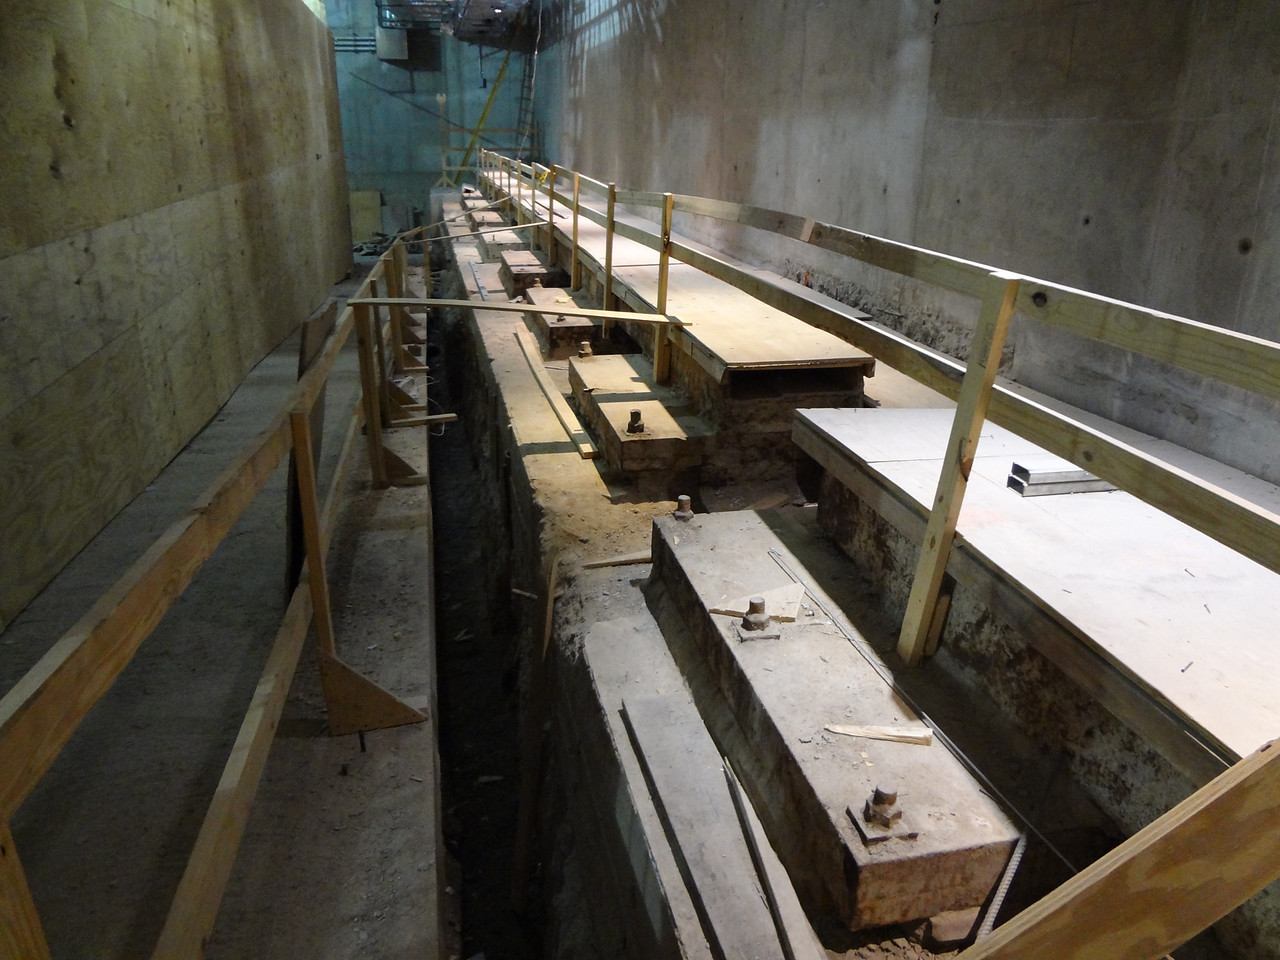 More original parts of the foundation from the World Trade Center South Tower.